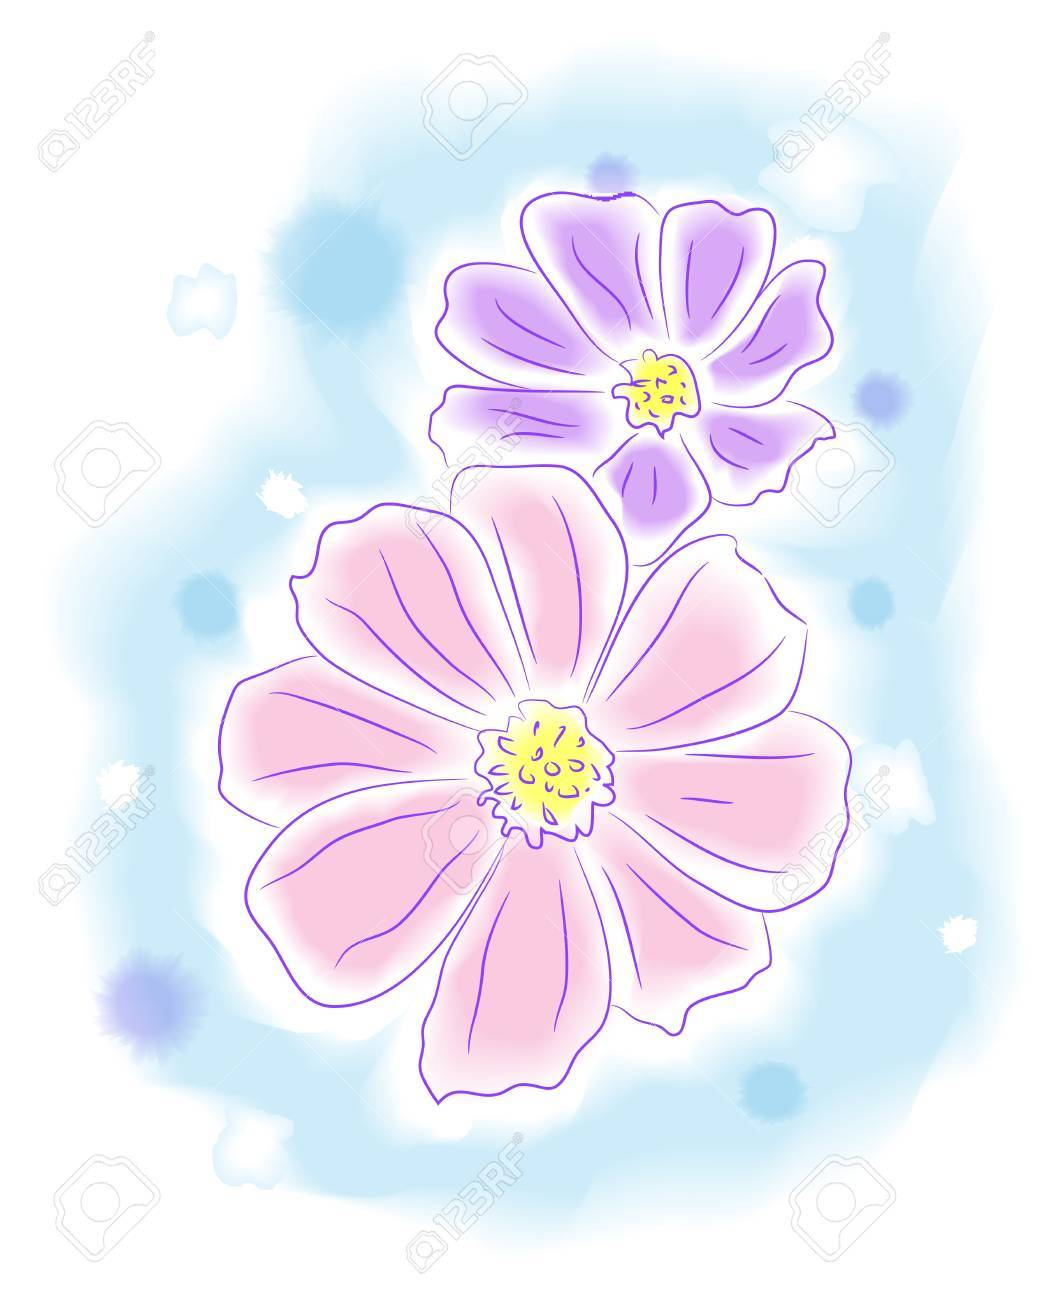 Flowers, water color style painting  illustration Stock Vector - 16886615